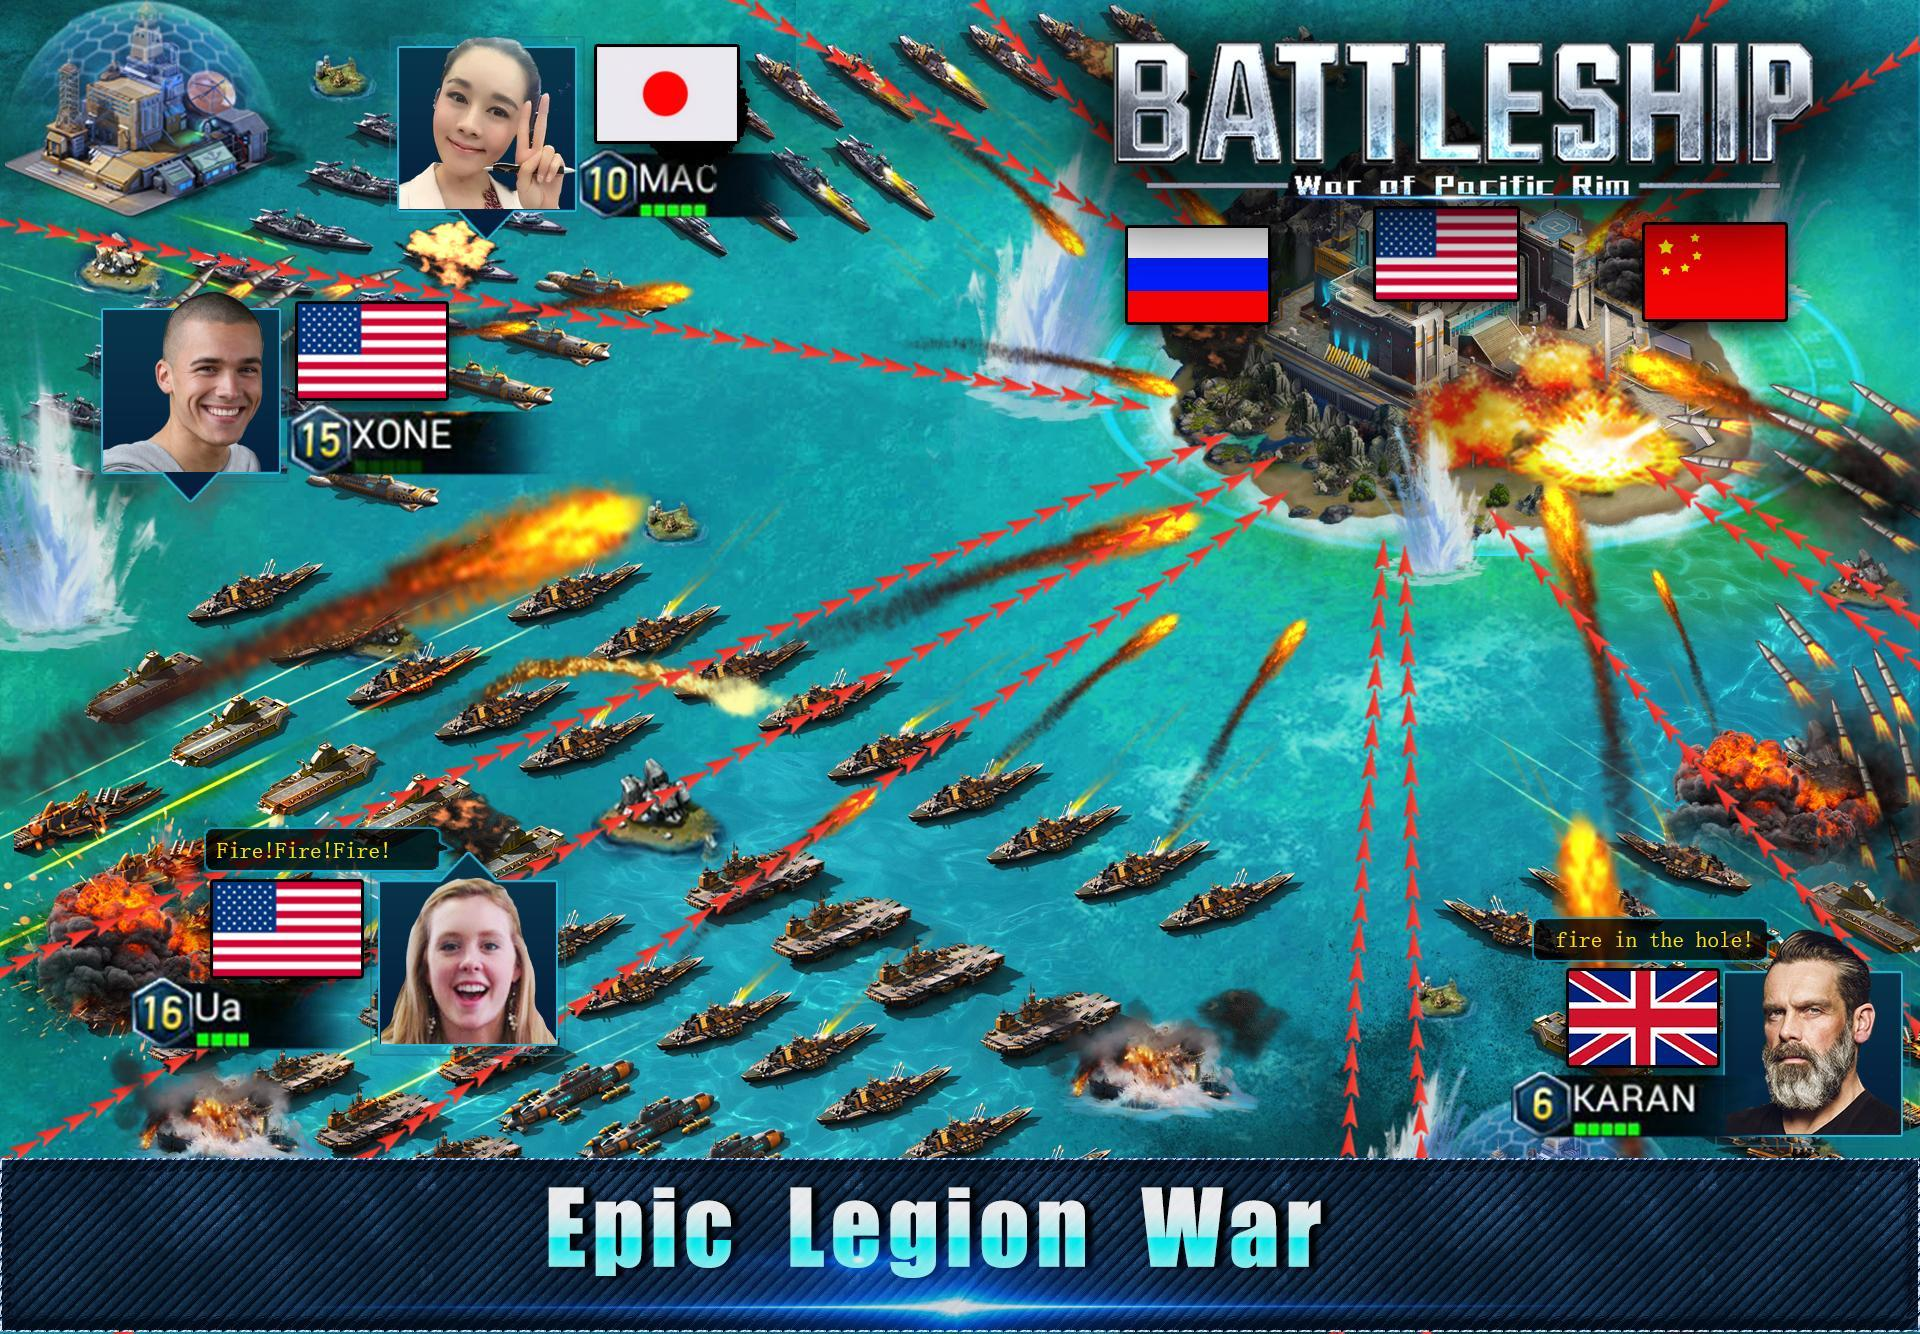 Battleship: Legion War of Pacific Rim for Android - APK Download